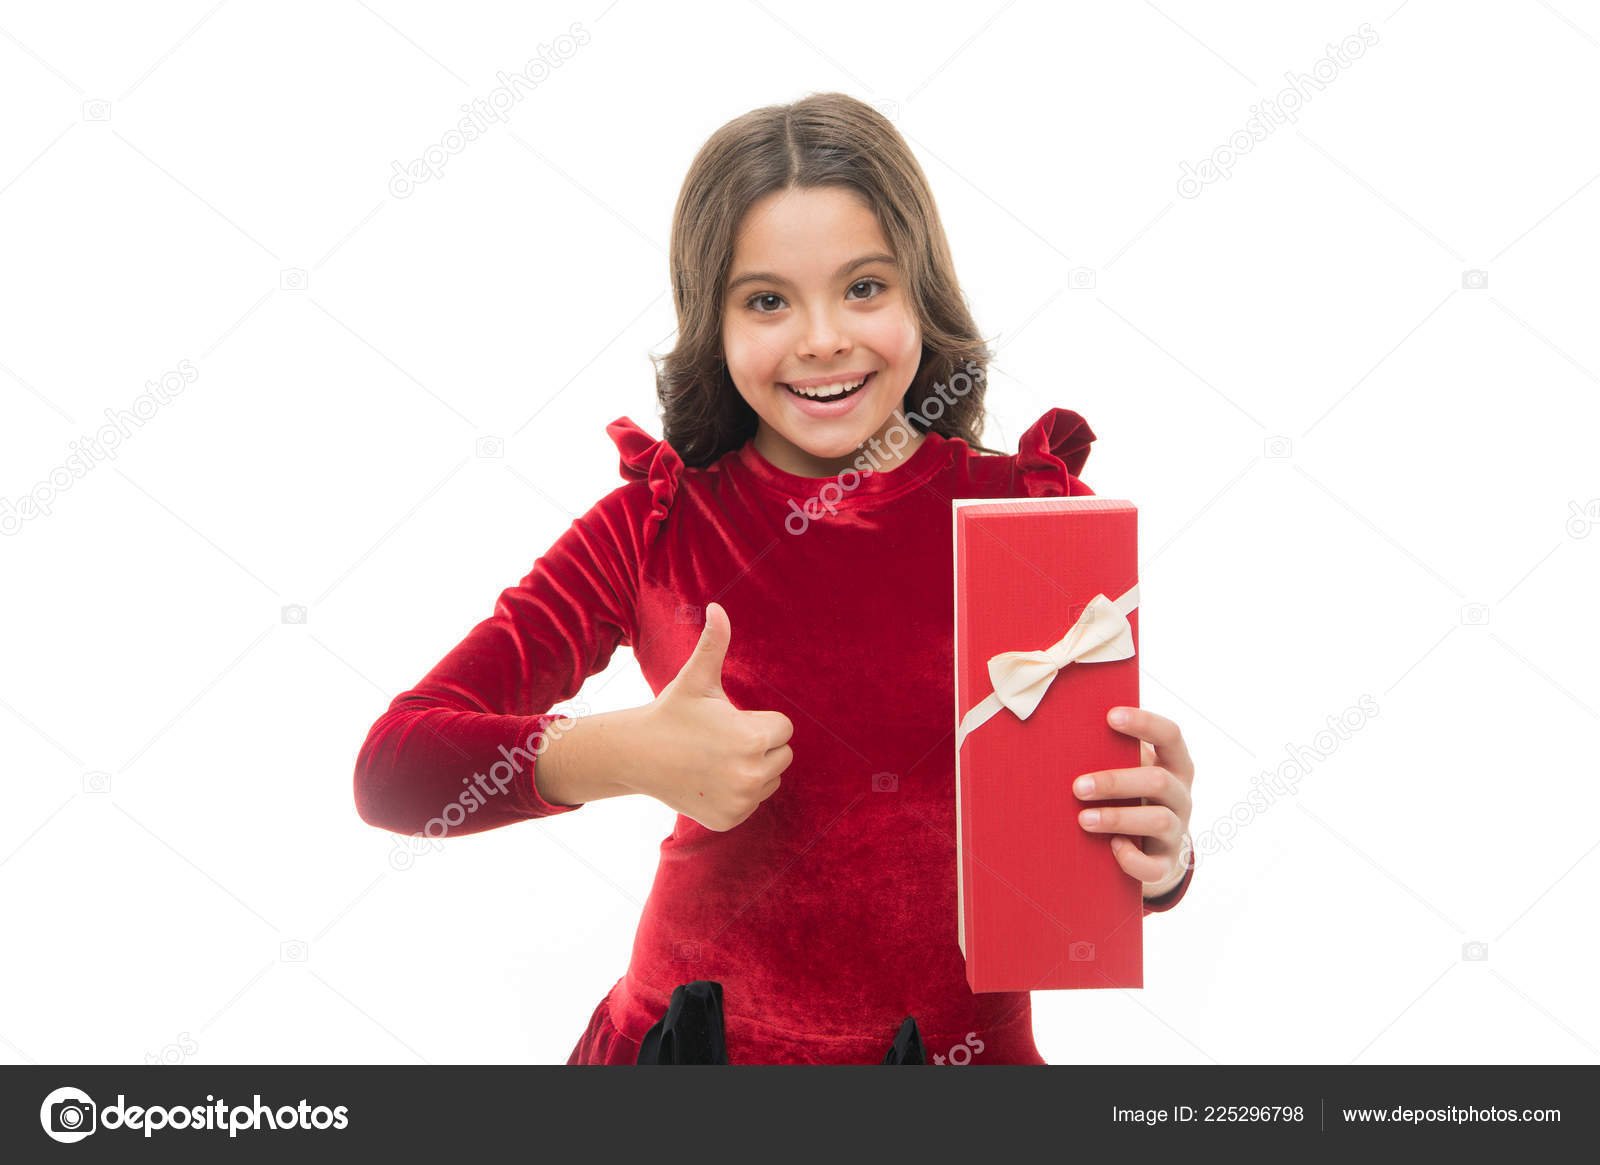 enjoy receiving presents best toys and christmas gifts for kids kid little girl in dress curly hairstyle hold gift box child excited about unpacking her